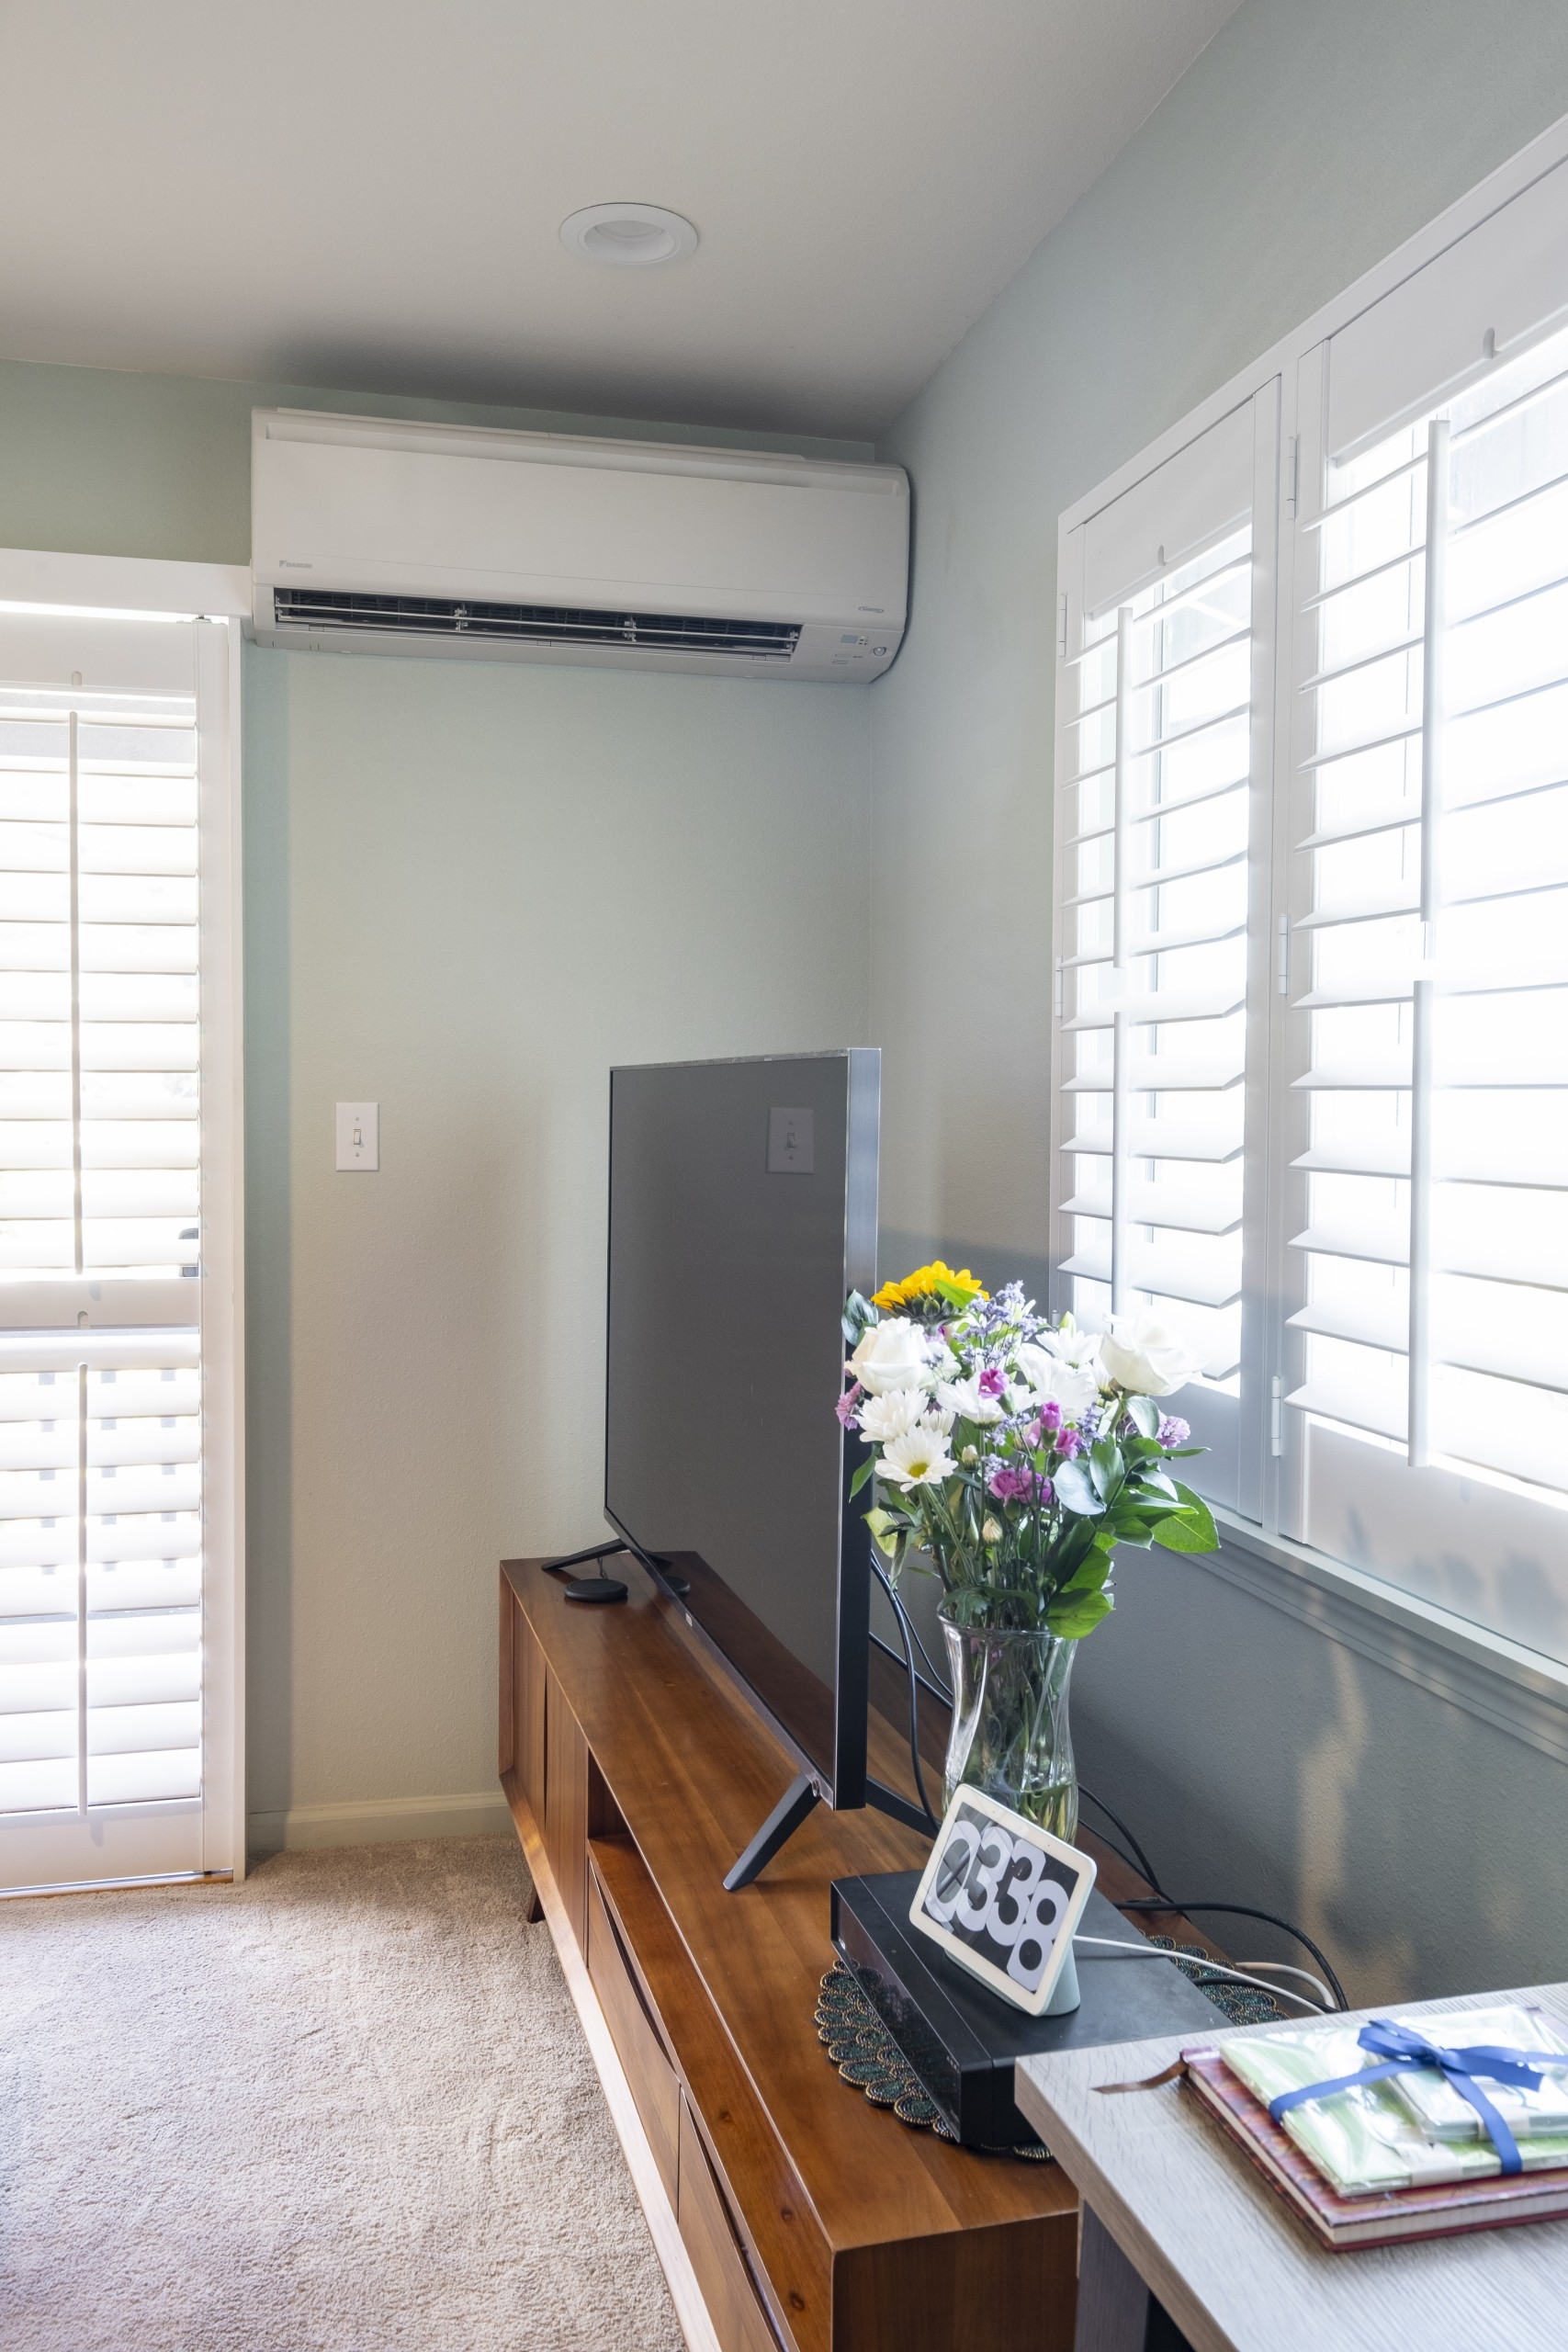 Cosco Air Conditioning